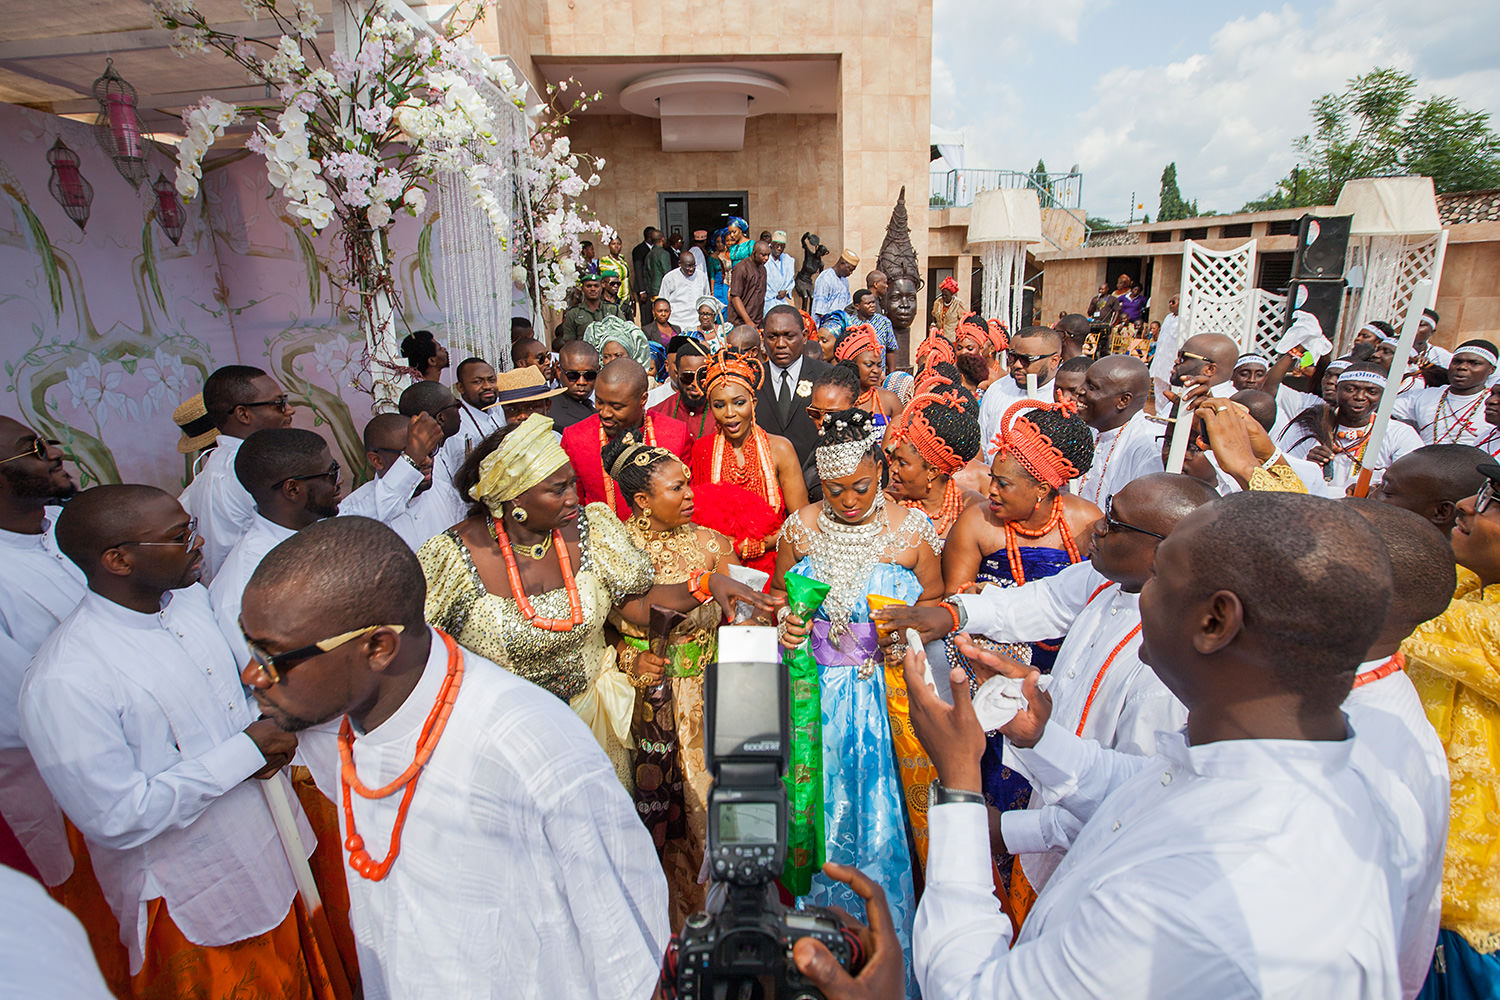 Nigerian wedding12.jpg